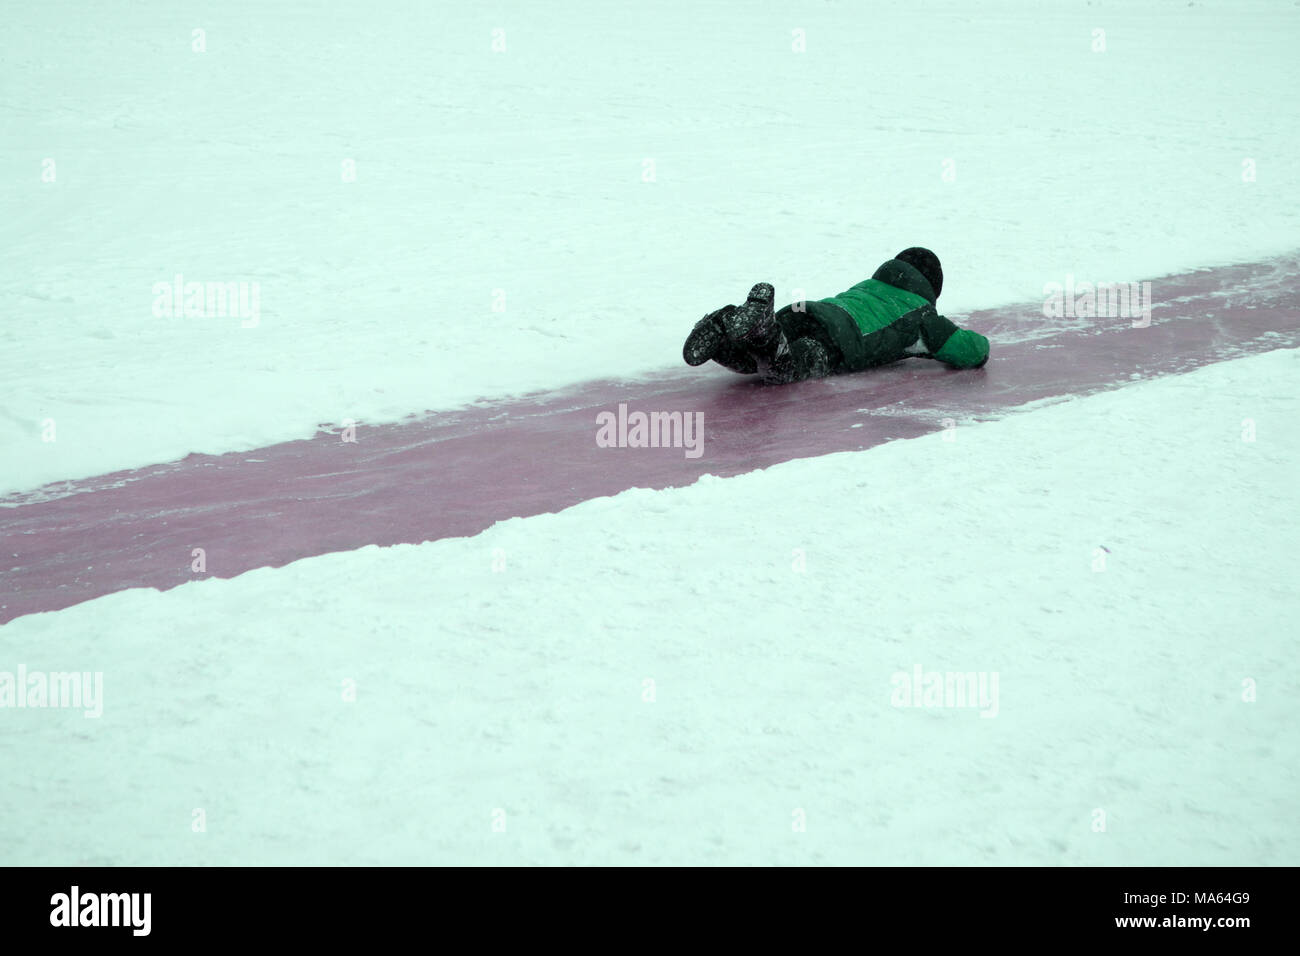 Slip on the slippery ice and snow on the road track at the country in freezing winter day - Stock Image